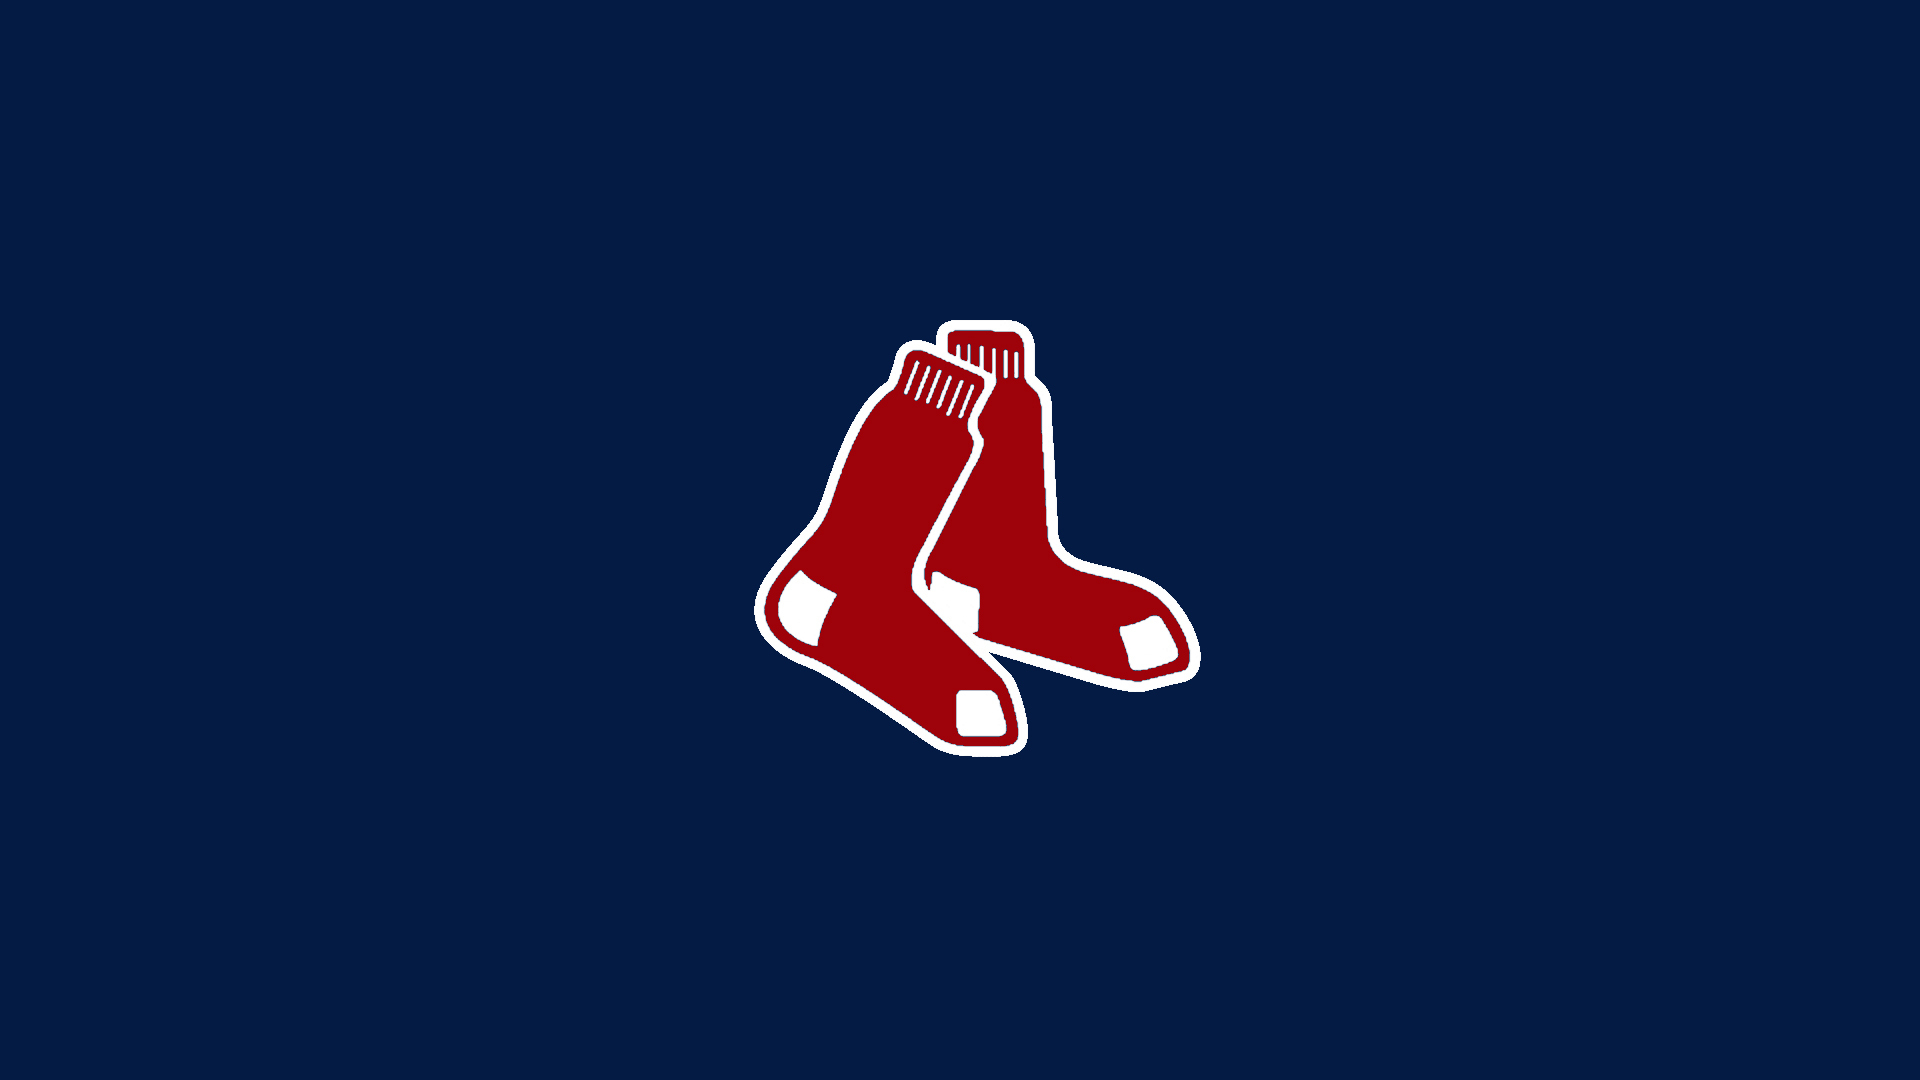 Boston Red Sox Red Sox Wallpaper 1920x1080 1920x1080